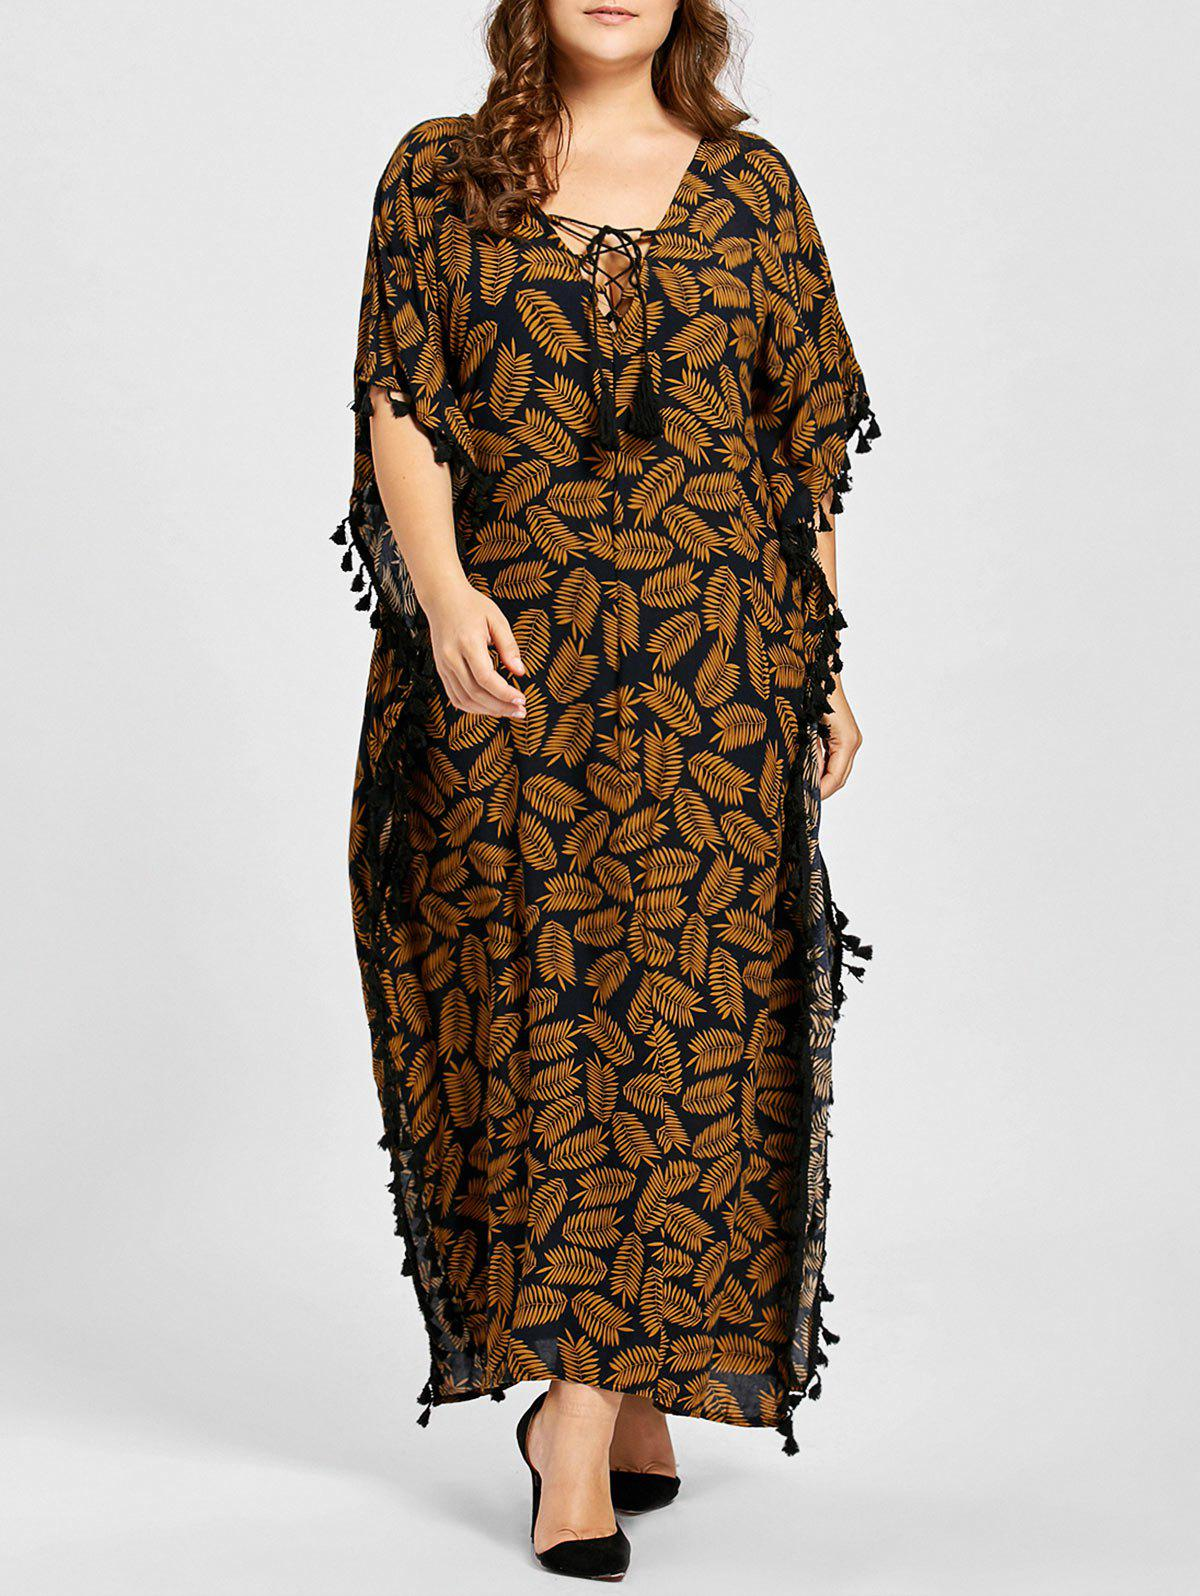 Plus Size Tassel Leaf Print Lace Up Poncho DressWOMEN<br><br>Size: 2XL; Color: DARK CAMEL; Style: Casual; Material: Cotton,Polyester; Silhouette: Asymmetrical; Dresses Length: Ankle-Length; Neckline: V-Neck; Sleeve Type: Batwing Sleeve; Sleeve Length: Half Sleeves; Embellishment: Tassel; Pattern Type: Plant; With Belt: No; Season: Fall; Weight: 0.4000kg; Package Contents: 1 x Dress;